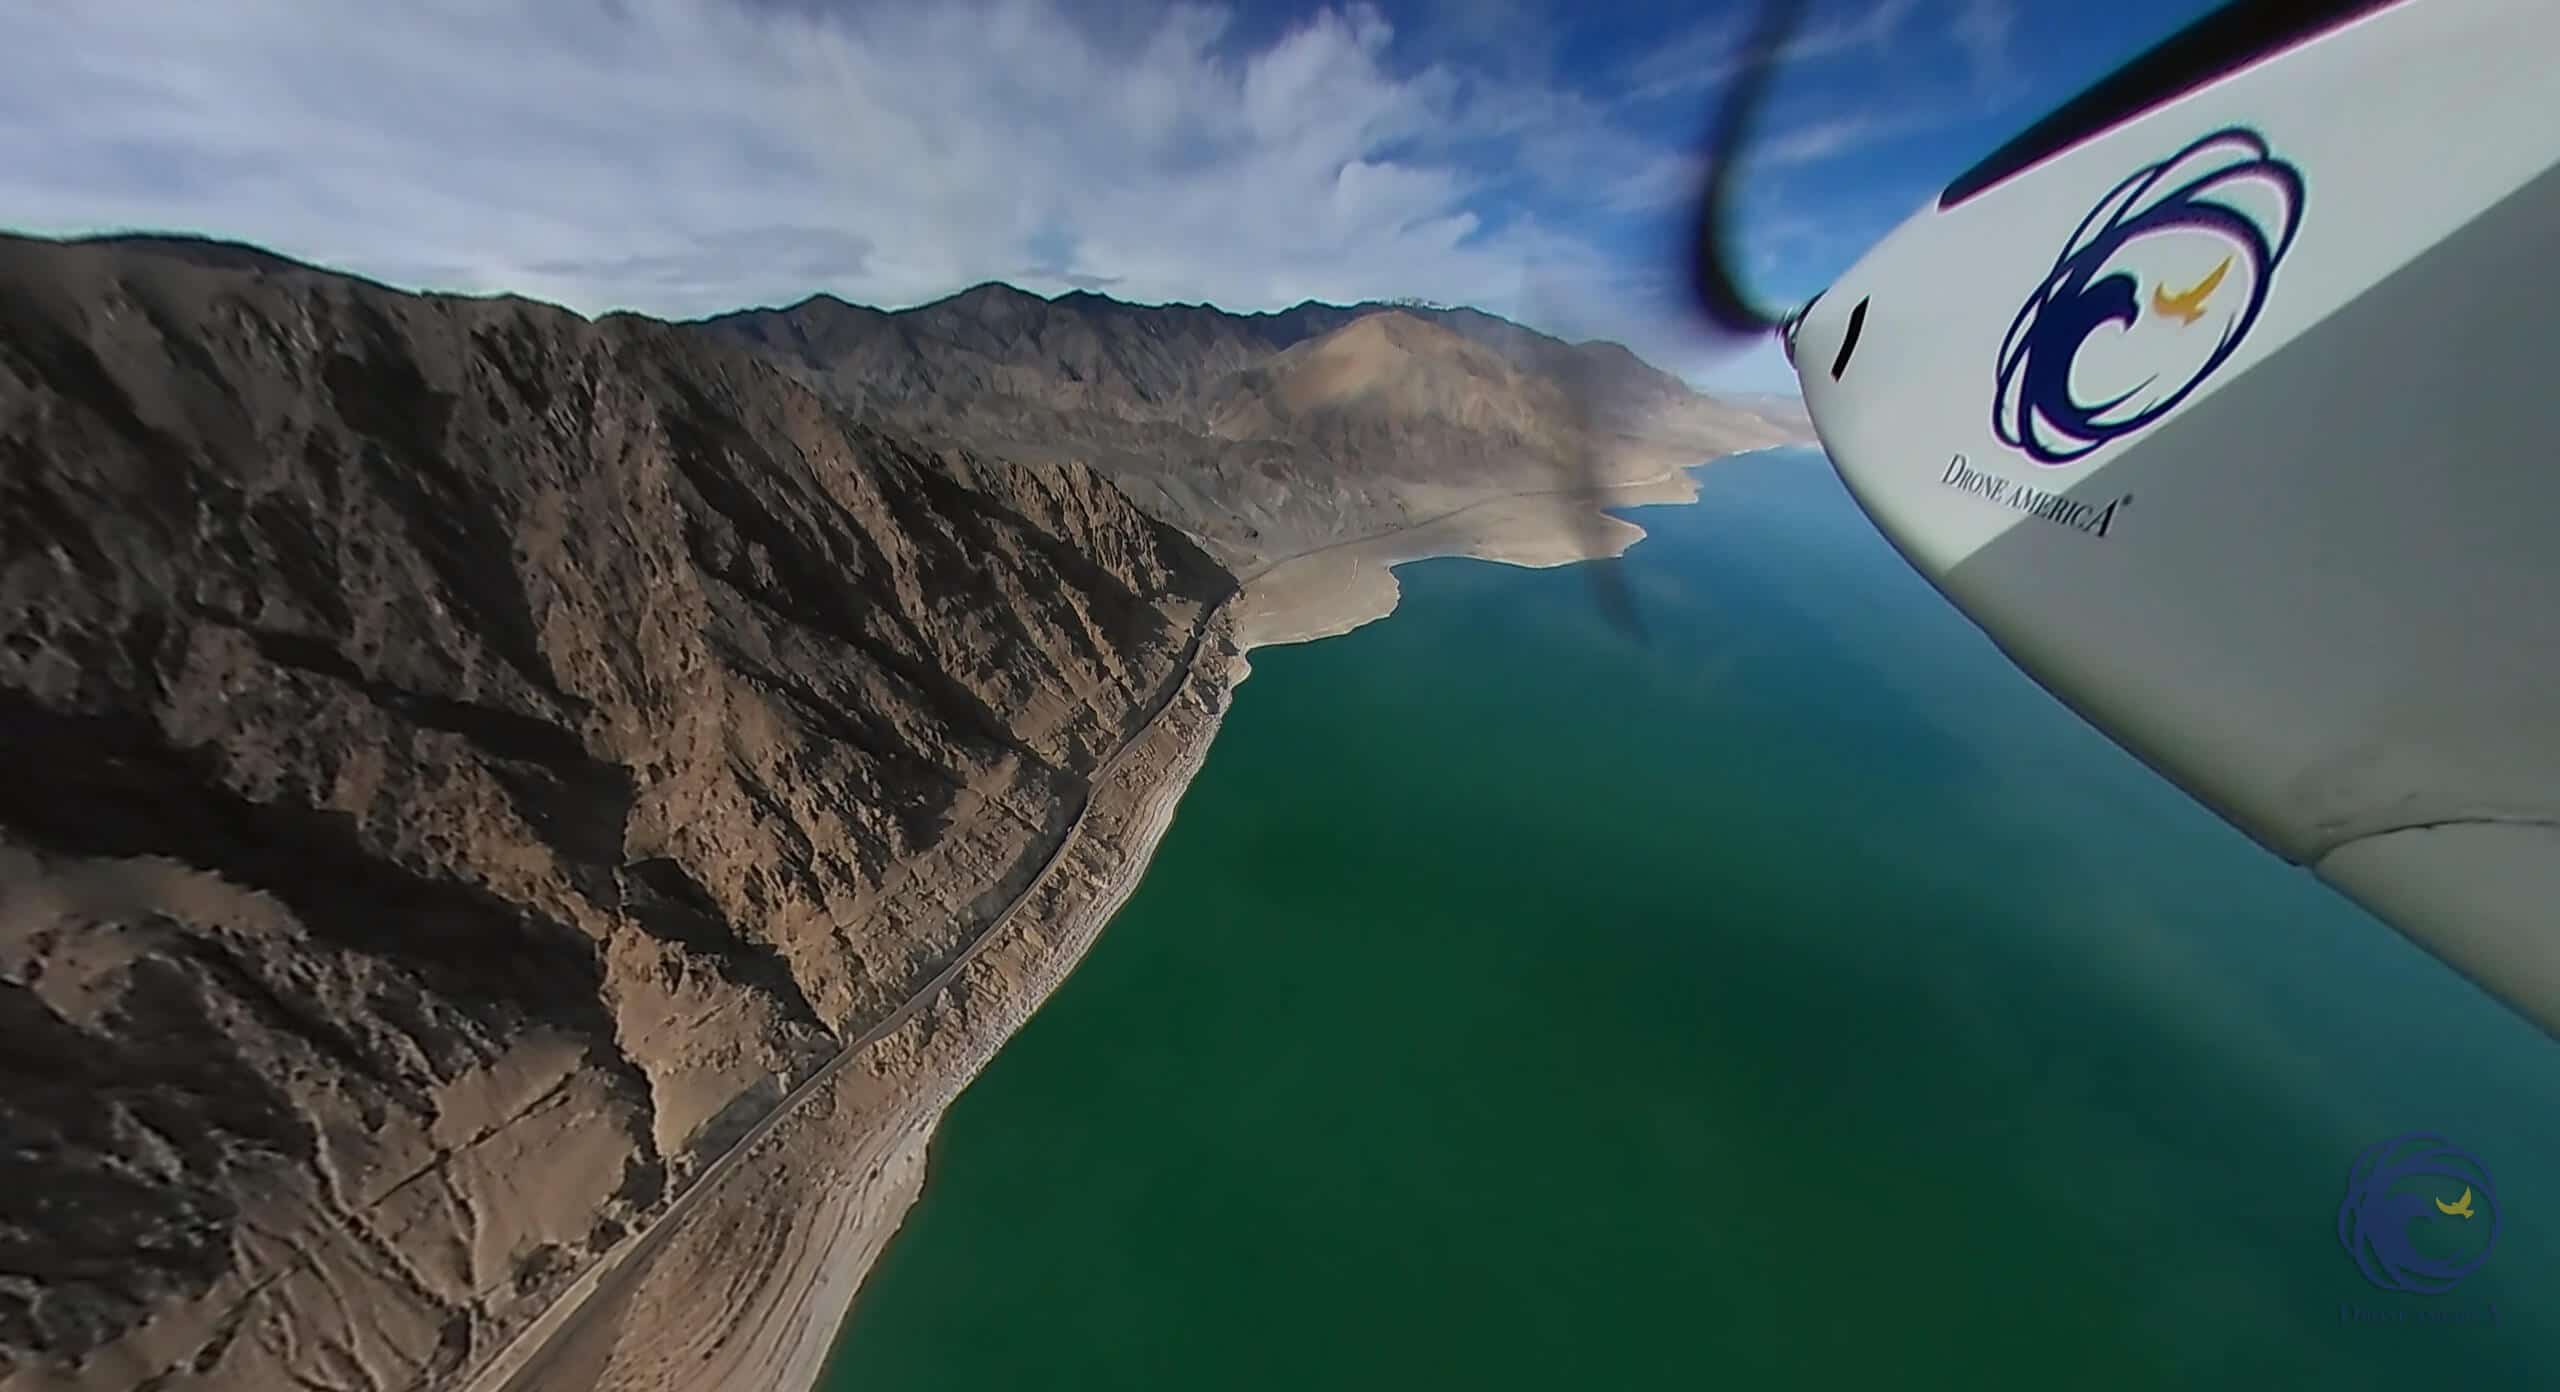 Drone America Savant™ unmanned aircraft on its historic 39-mile package delivery flight over Walker Lake, NV.